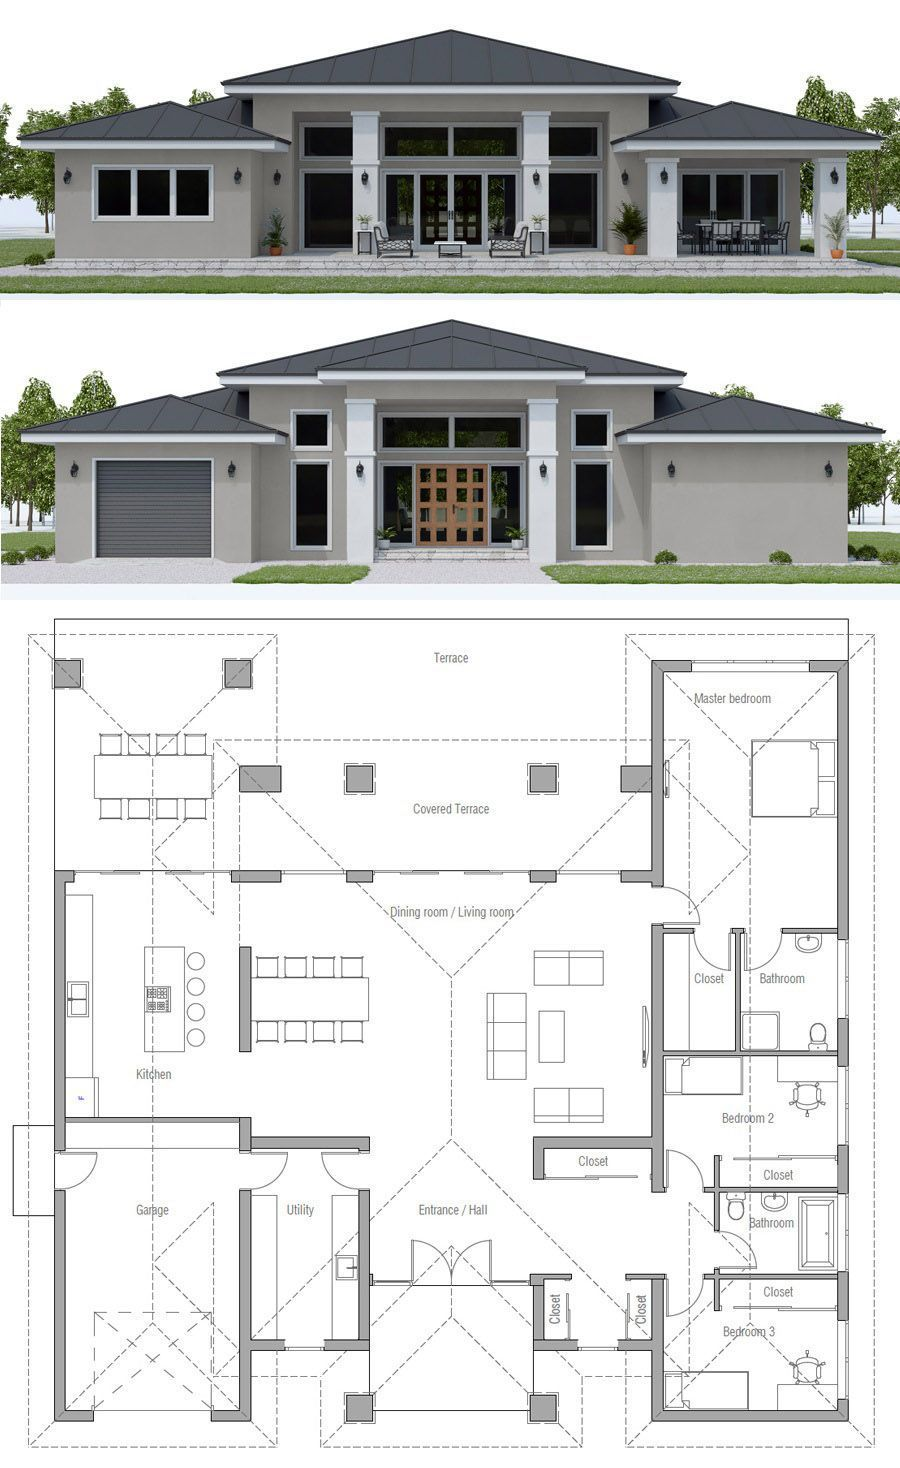 House Plan Ch569 Arquitectonico House Plan Home Plan Floor Plan Architecture Architecture In 2020 House Plan Gallery New House Plans Architectural House Plans